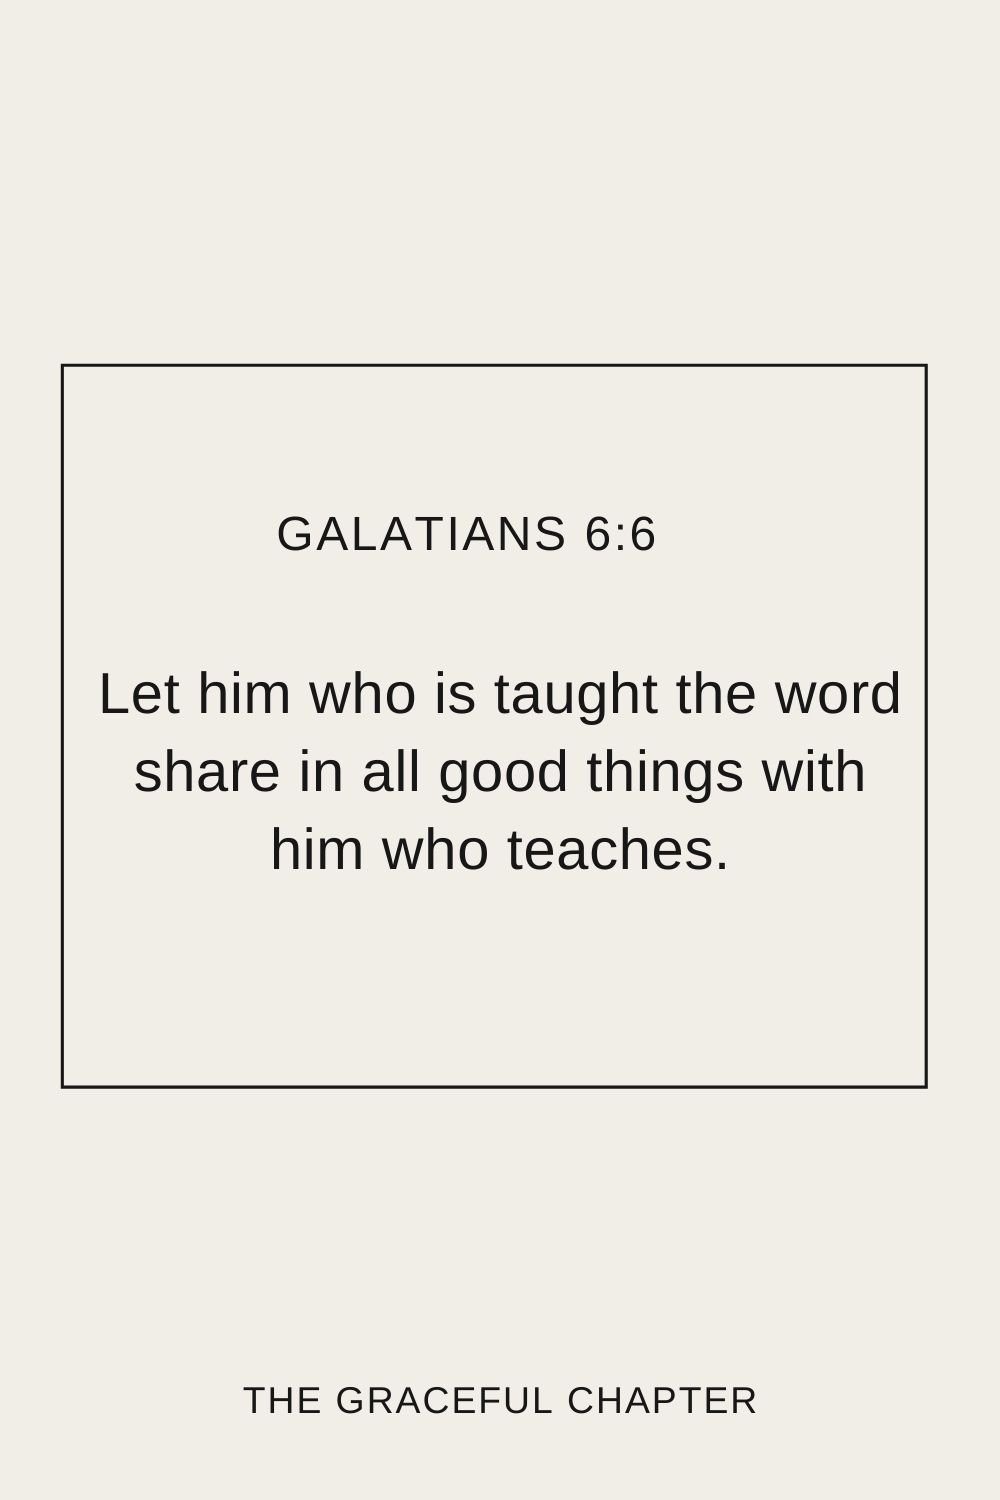 Let him who is taught the word share in all good things with him who teaches. Galatians 6:6